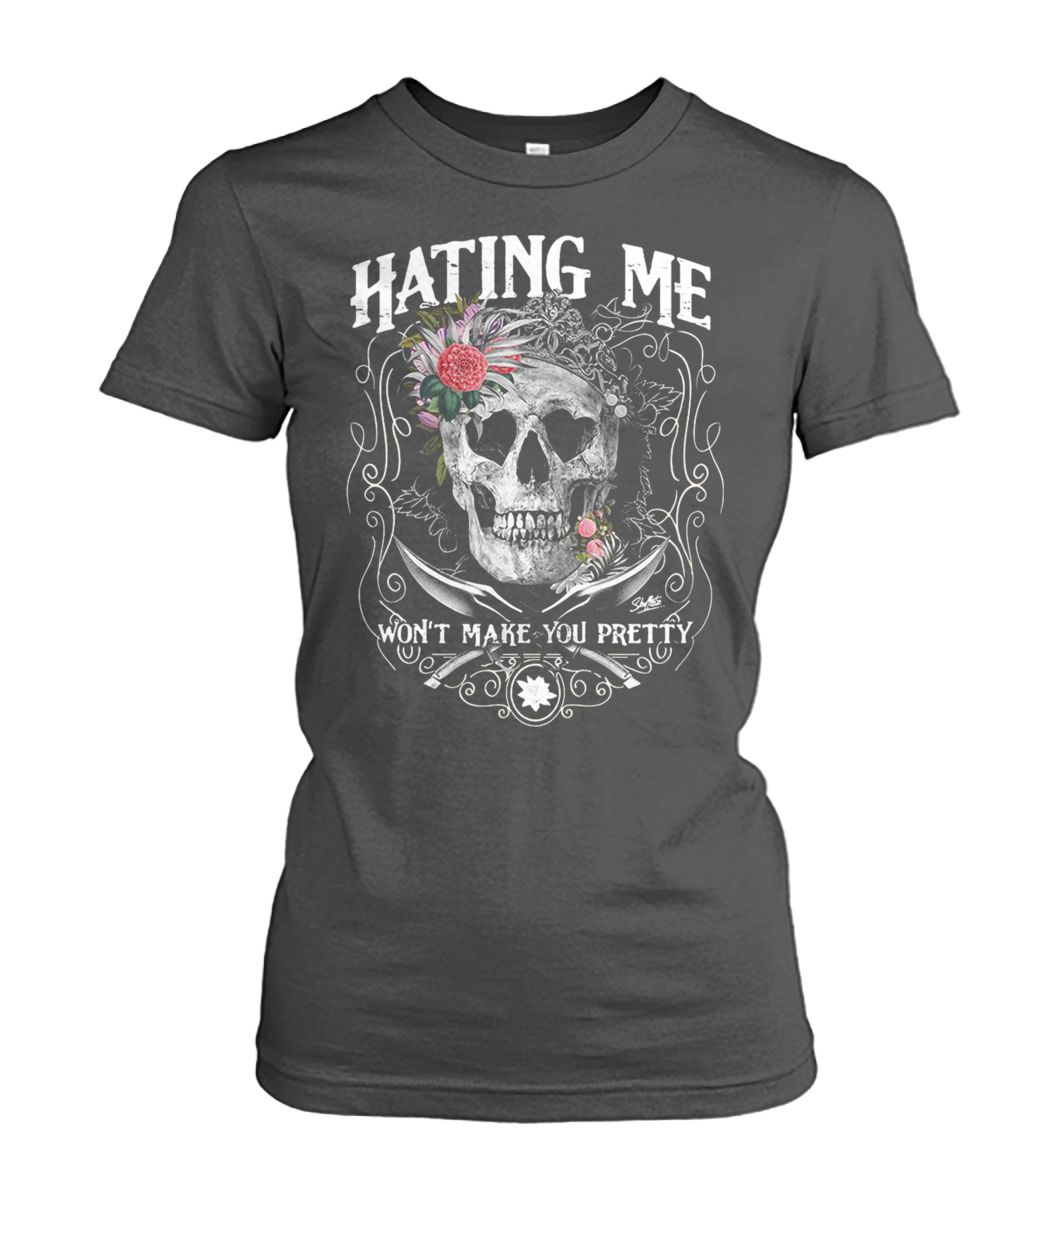 Skull queen hating me won't make you pretty women's crew tee